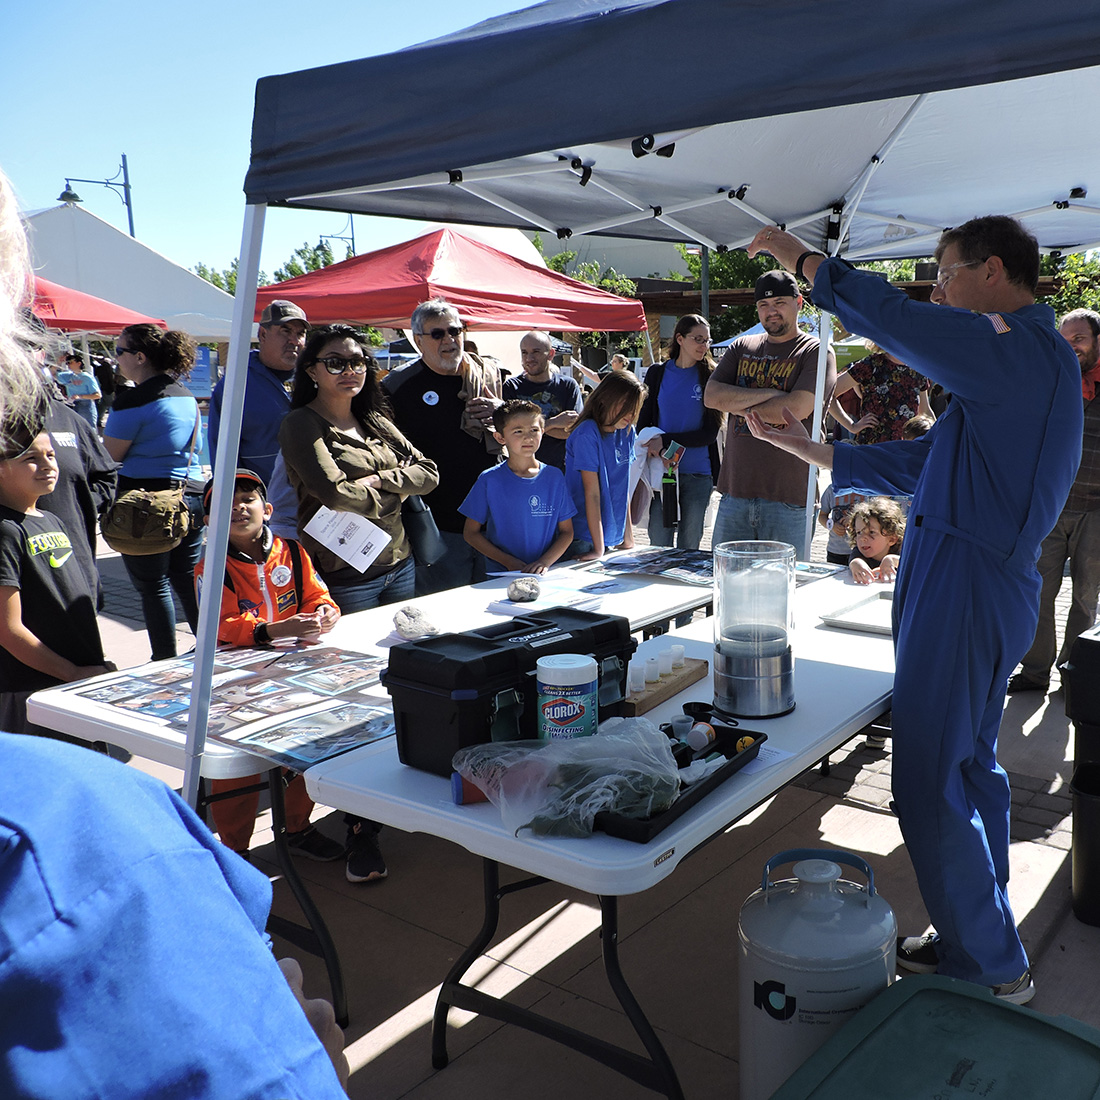 Las Cruces Space Festival Students learning at booth